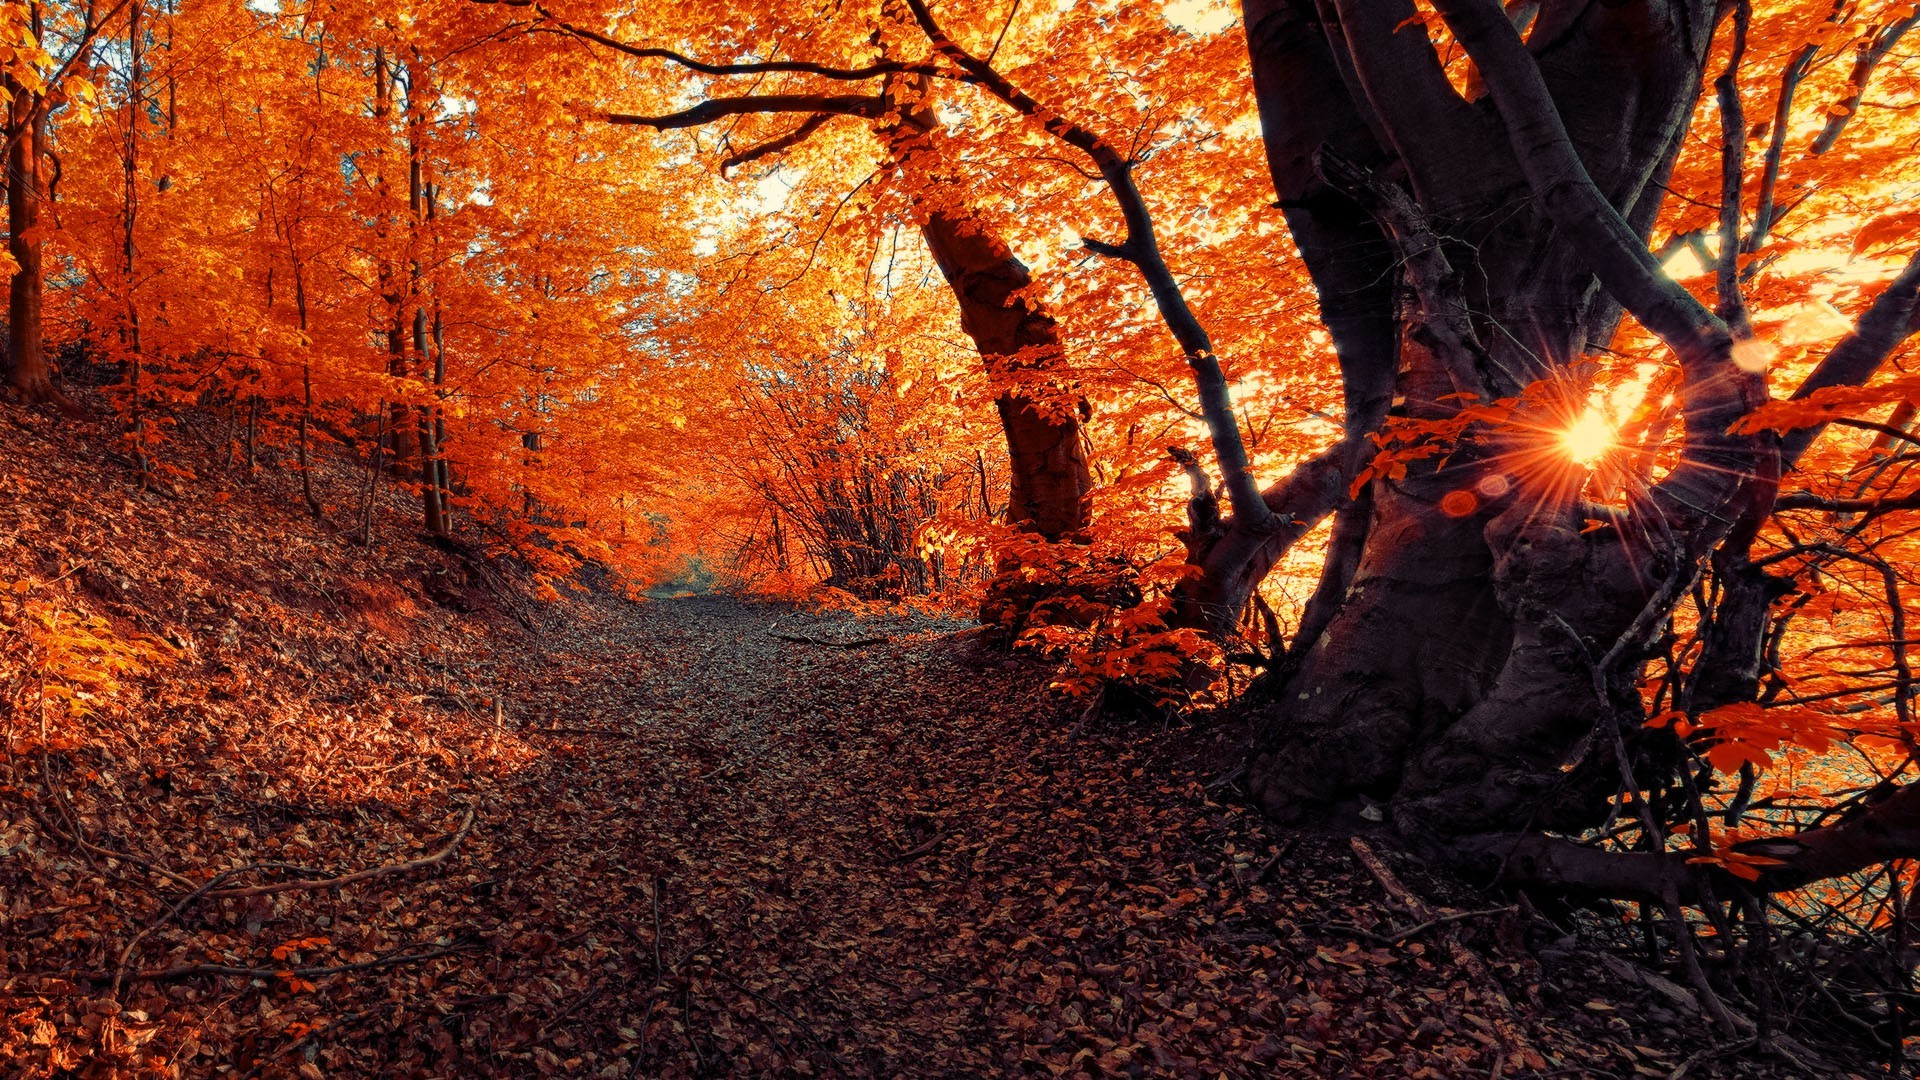 3d Falling Leaves Animated Wallpaper Free Download Landscape Fall Seasons Forest Sunset Nature